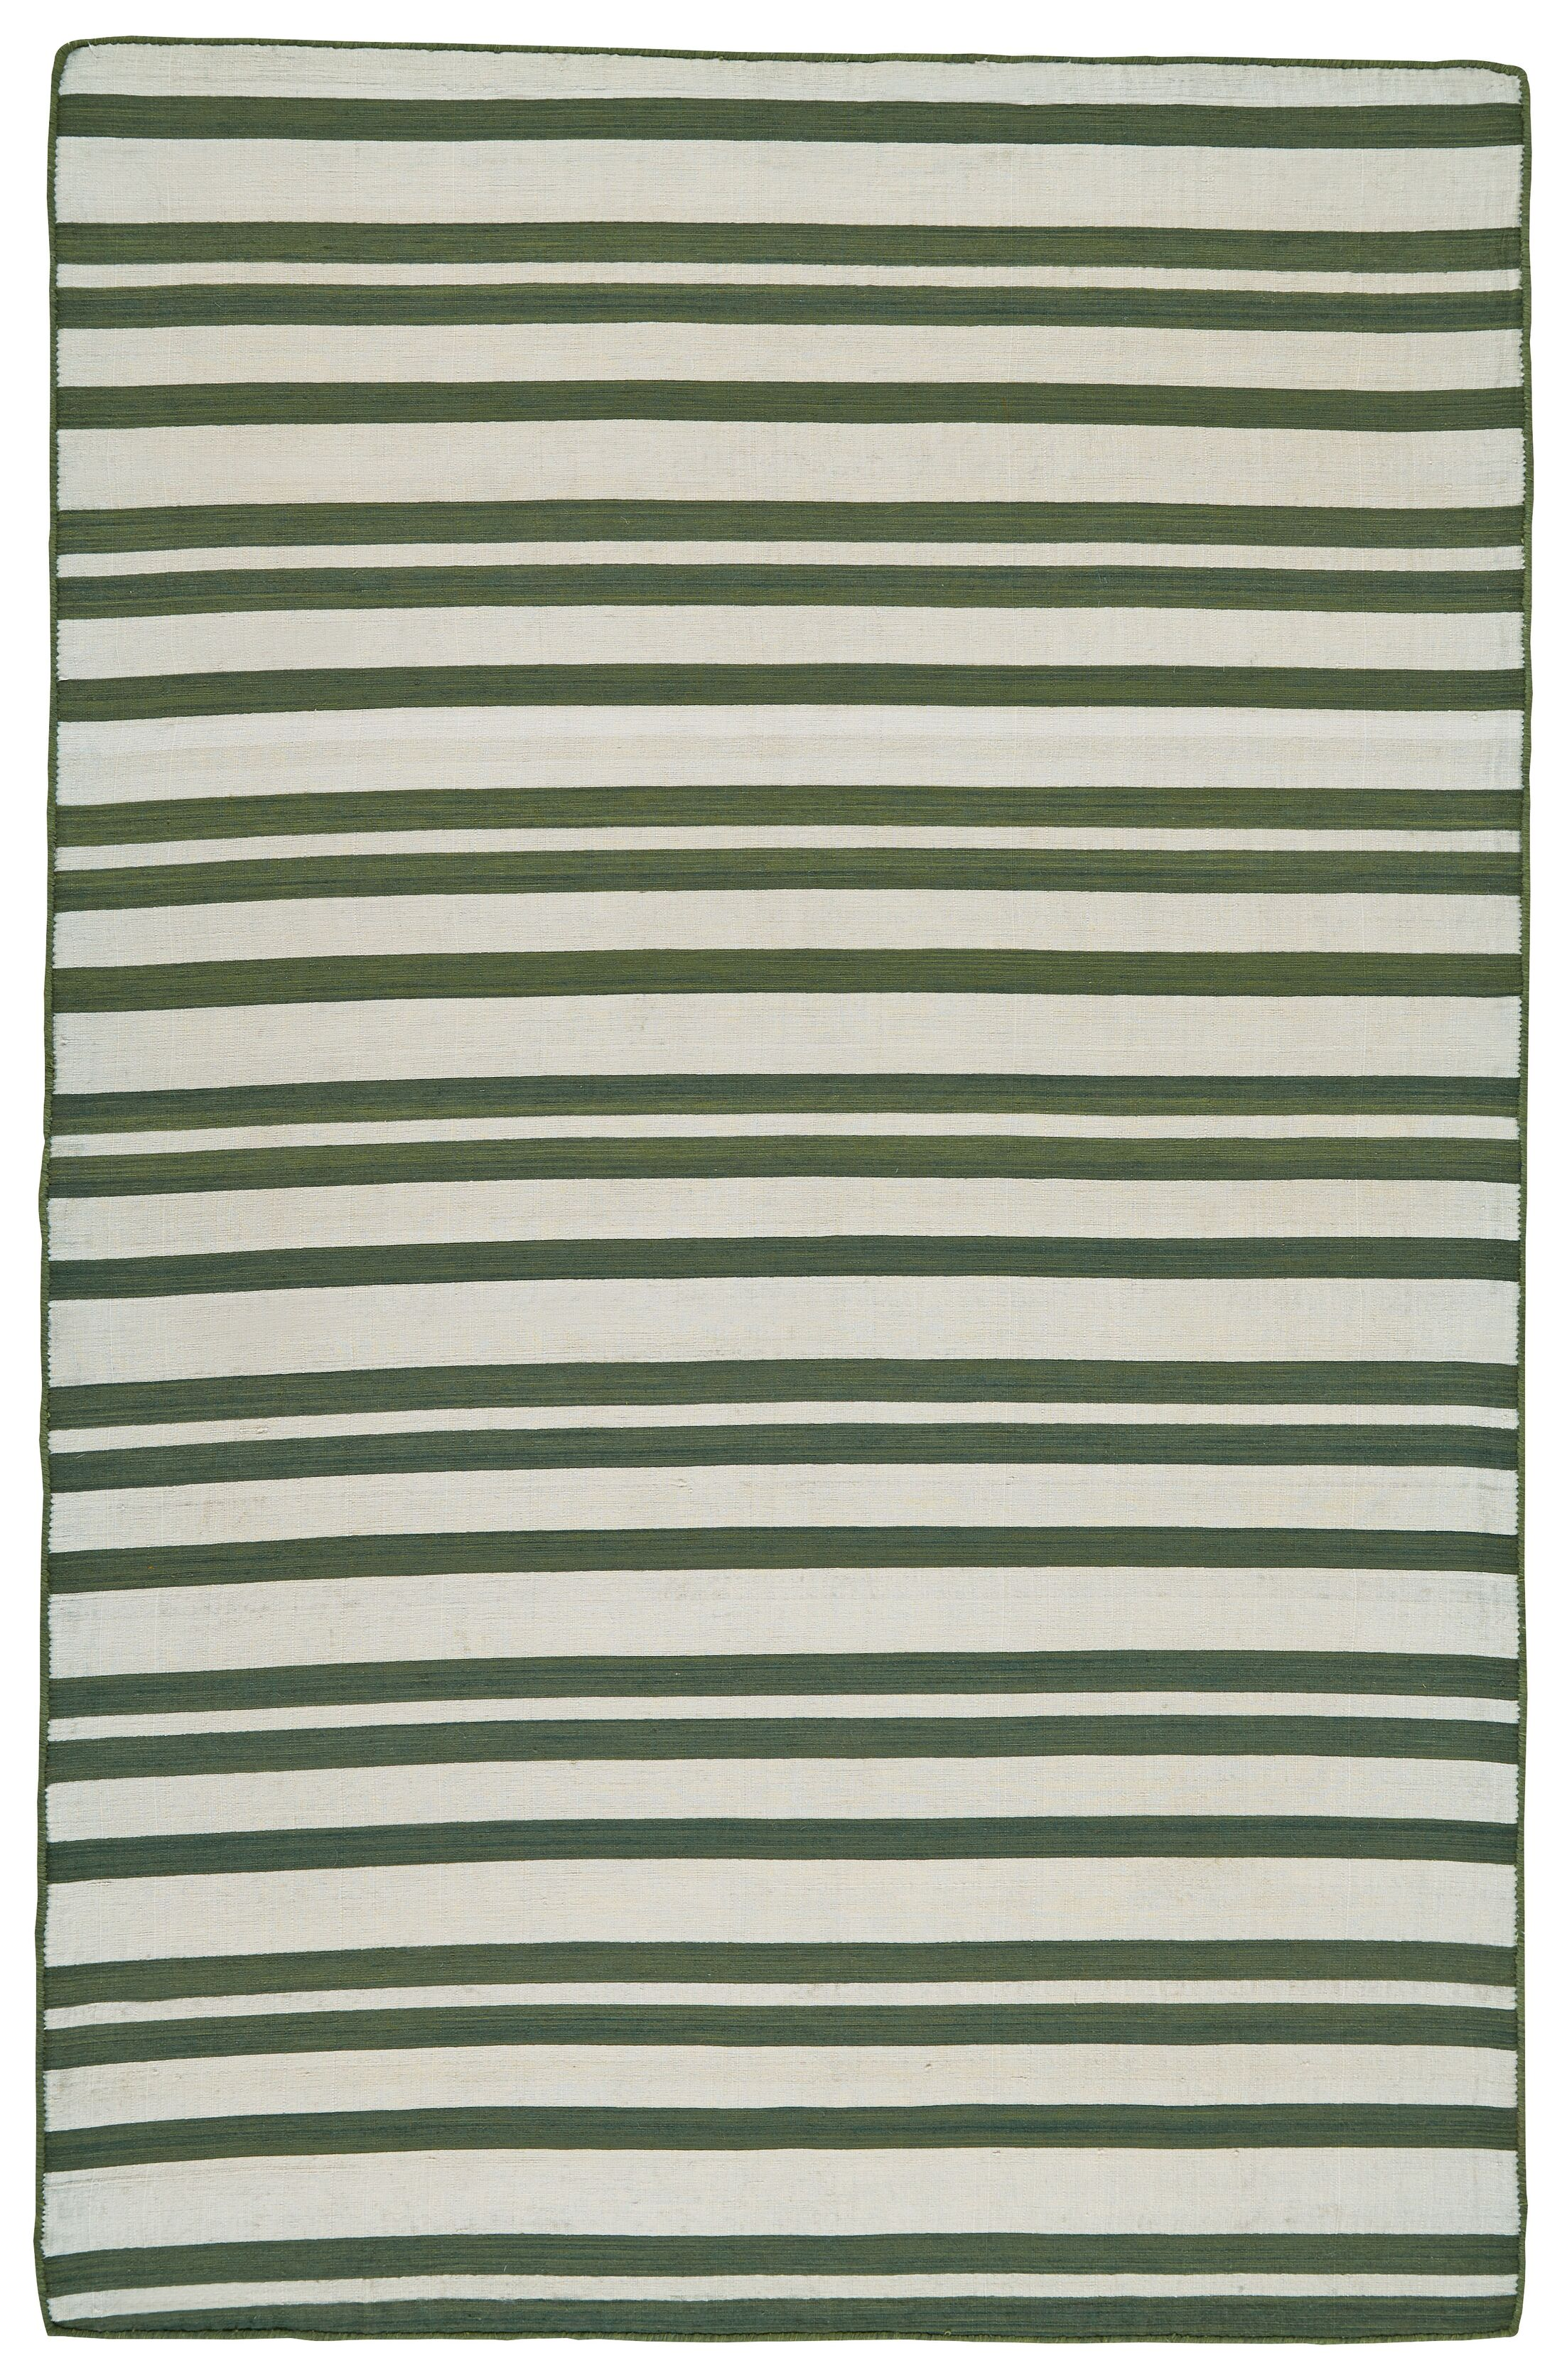 New Portland Hand-Loomed Olive Indoor/Outdoor Area Rug Rug Size: Rectangle 2' x 3'